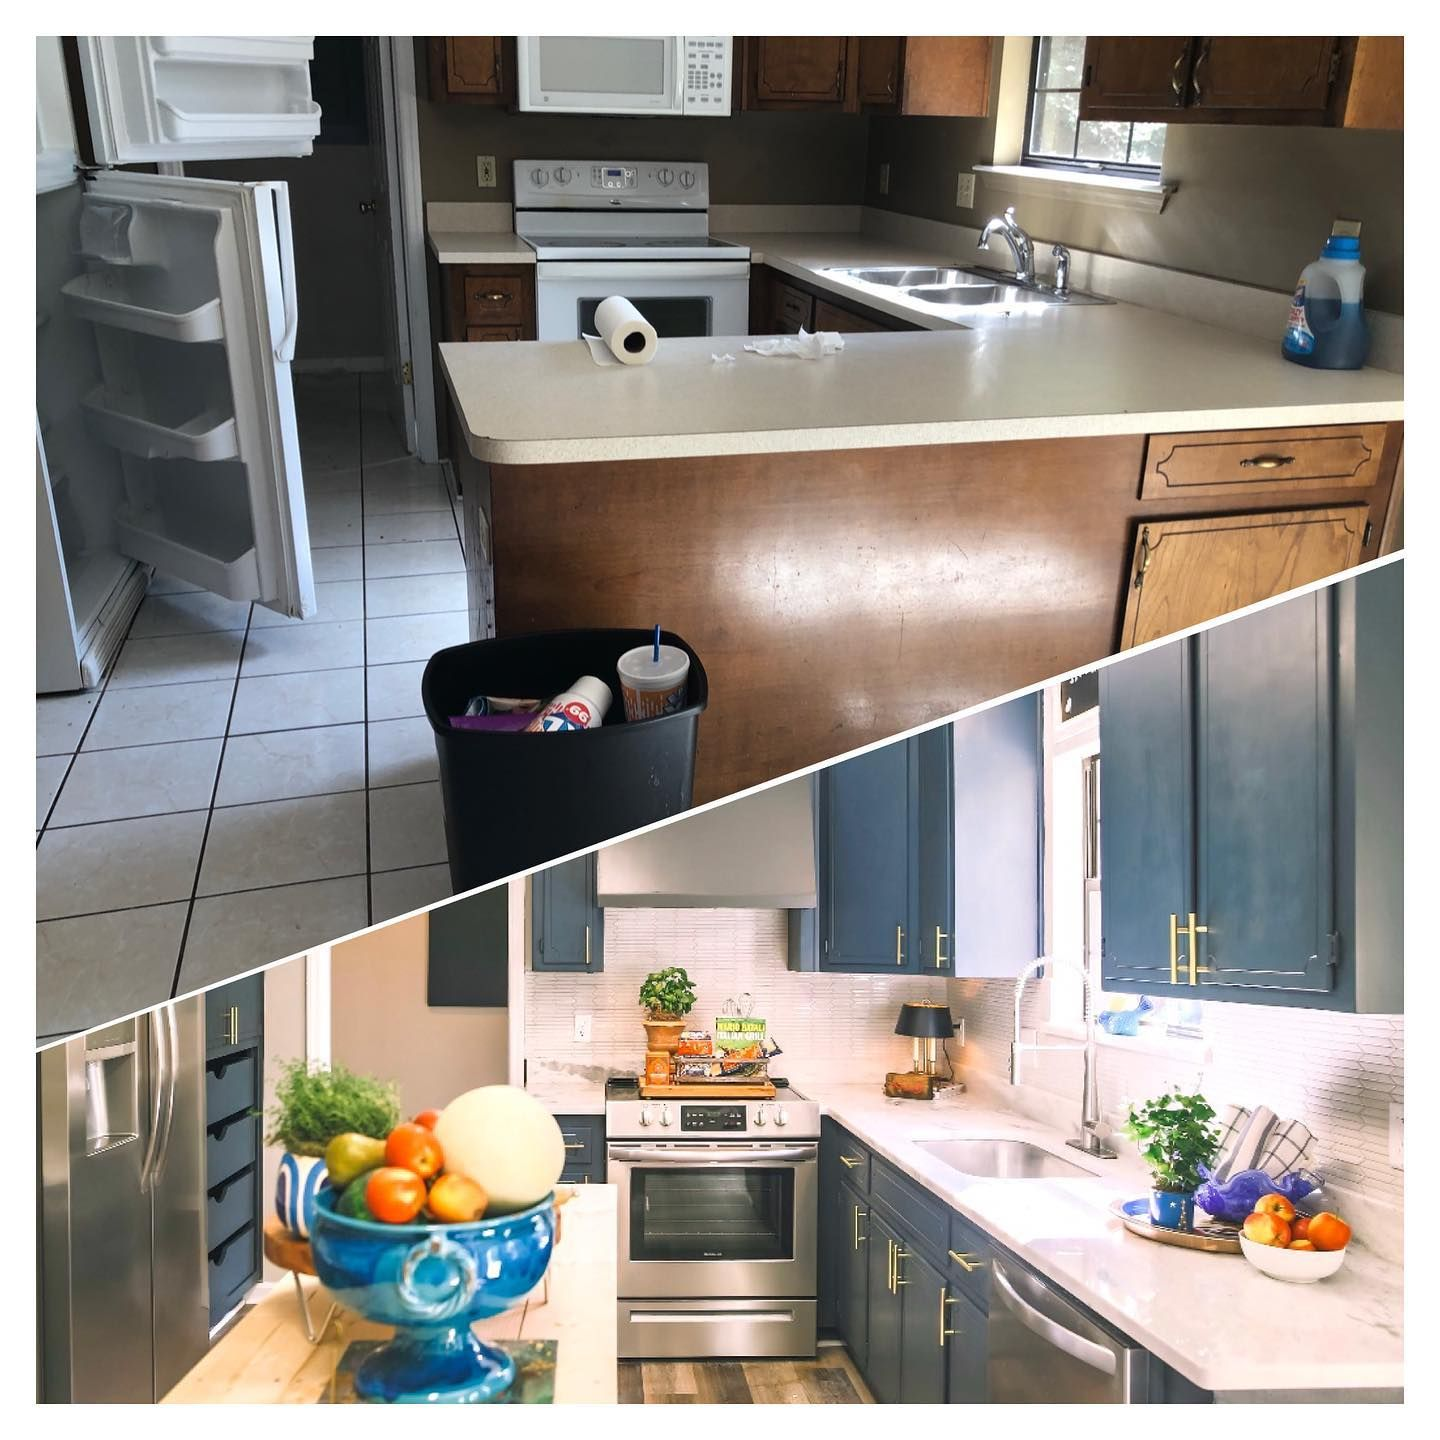 Before After Instadesign Styleandsold Killearn Tallahassee Lovely Rehab Hgtv Styleoftheday Staging Staginghomes In 2020 Kitchen Kitchen Cabinets Home